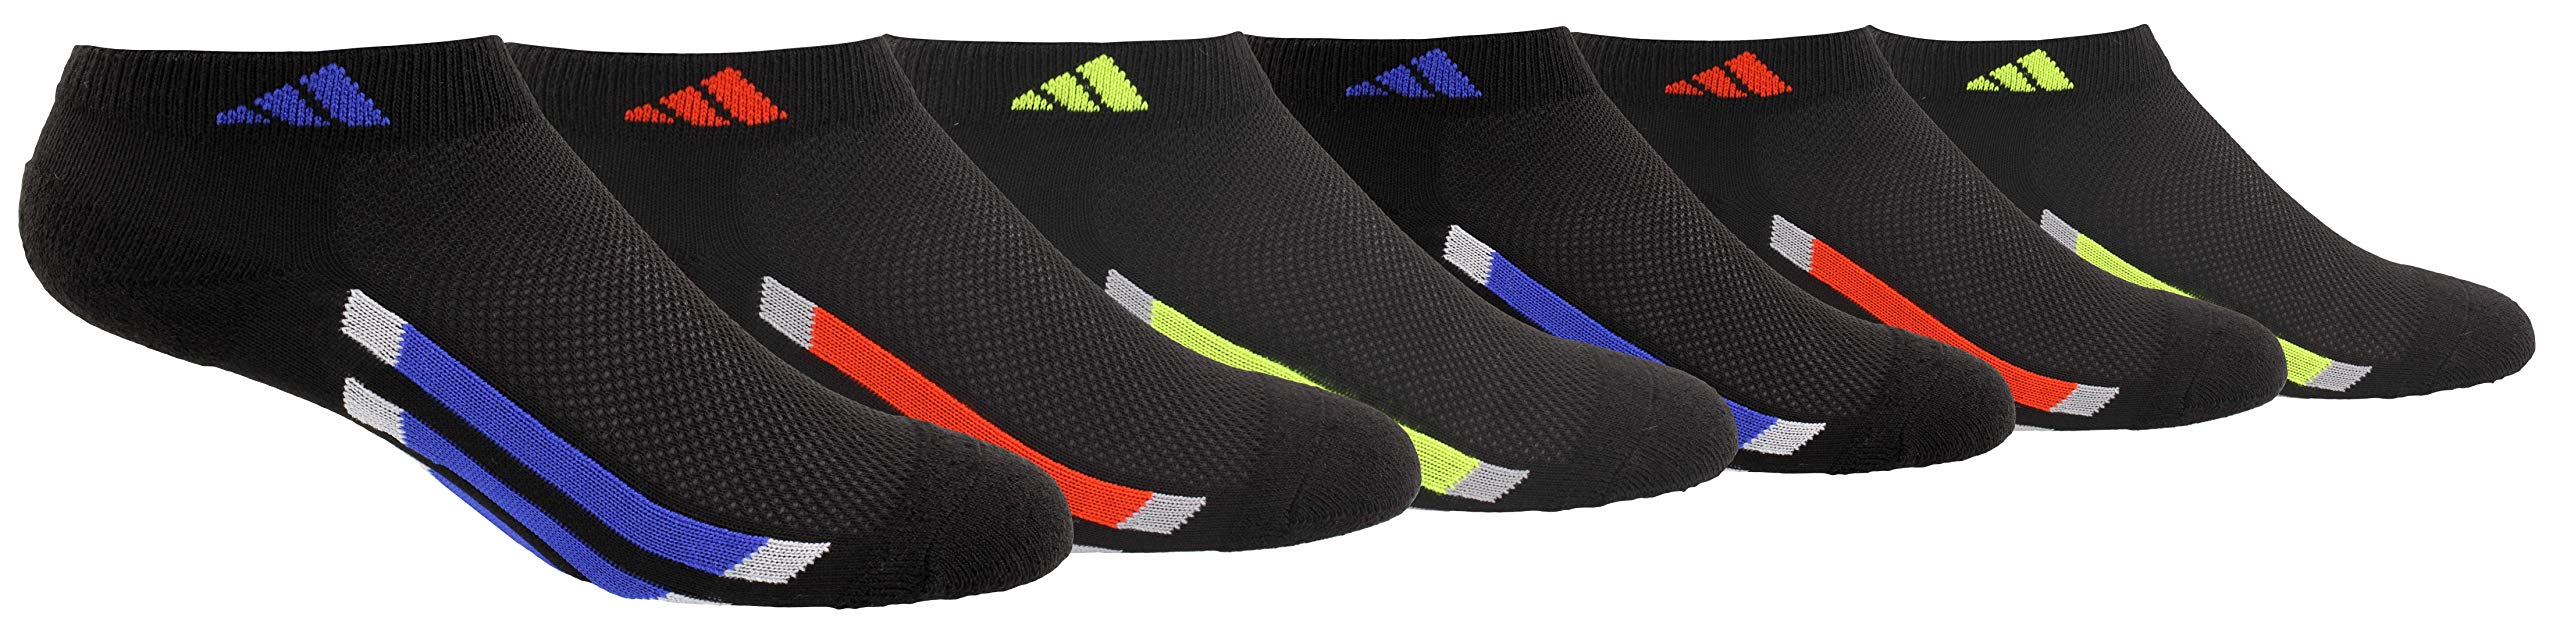 adidas Youth Kids-Boy's/Girl's Cushioned Low Cut Socks (6-Pair), Black/Active Blue/Light Onix Black/Active Red/Ligh, Medium, (Shoe Size 13C-4Y) by adidas